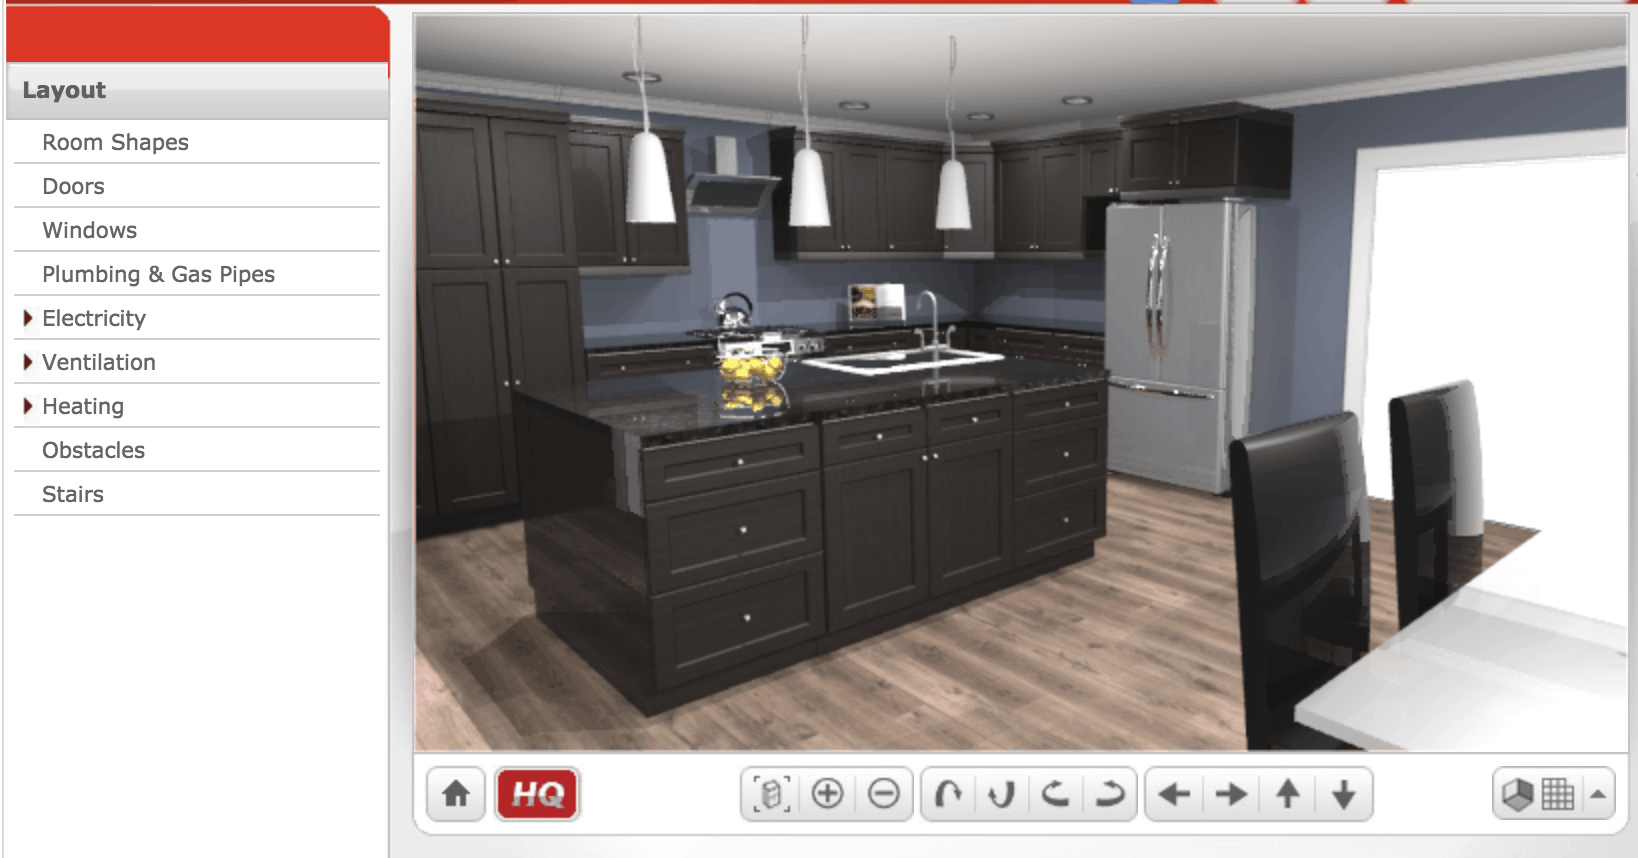 Best Kitchen Gallery: 16 Best Online Kitchen Design Software Options In 2018 Free Paid of Kitchen Cabinet Layout Software Free Download on rachelxblog.com